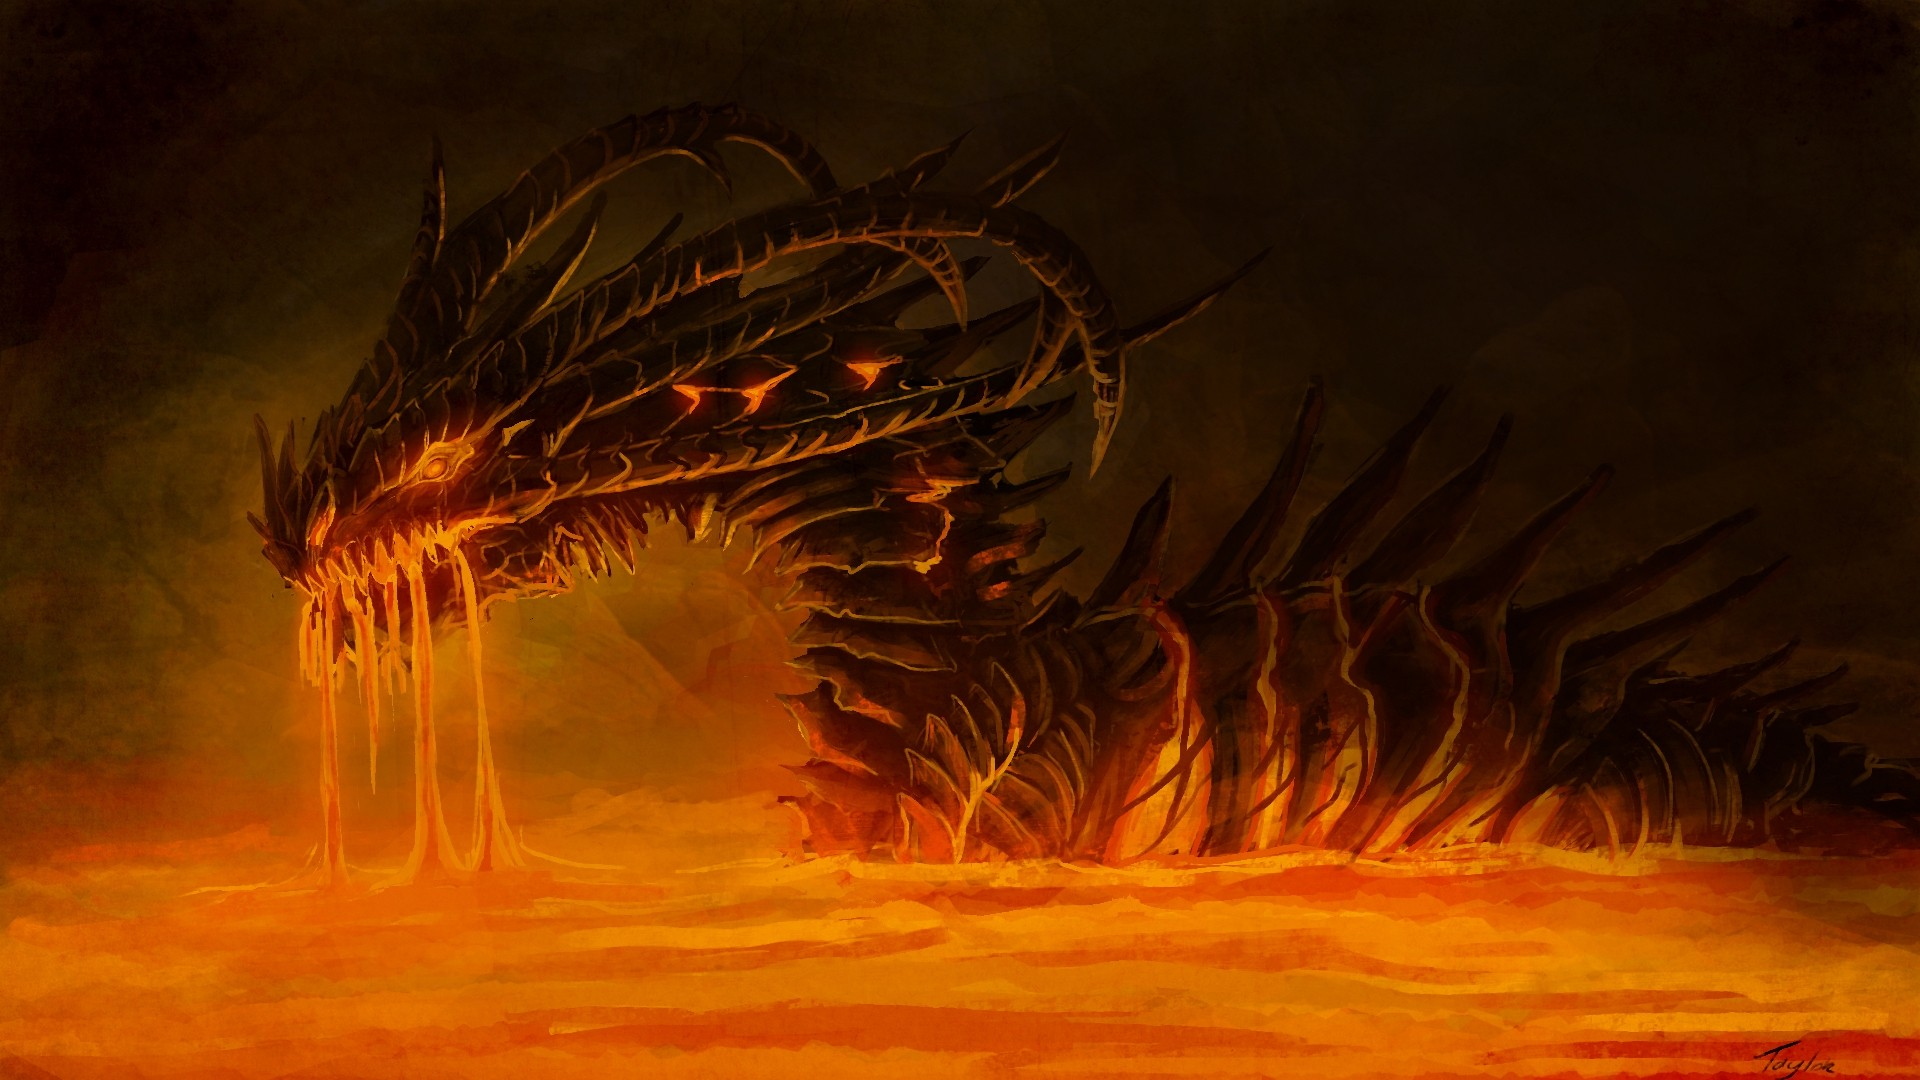 Dragon background download free amazing full hd - Dragon backgrounds 1920x1080 ...